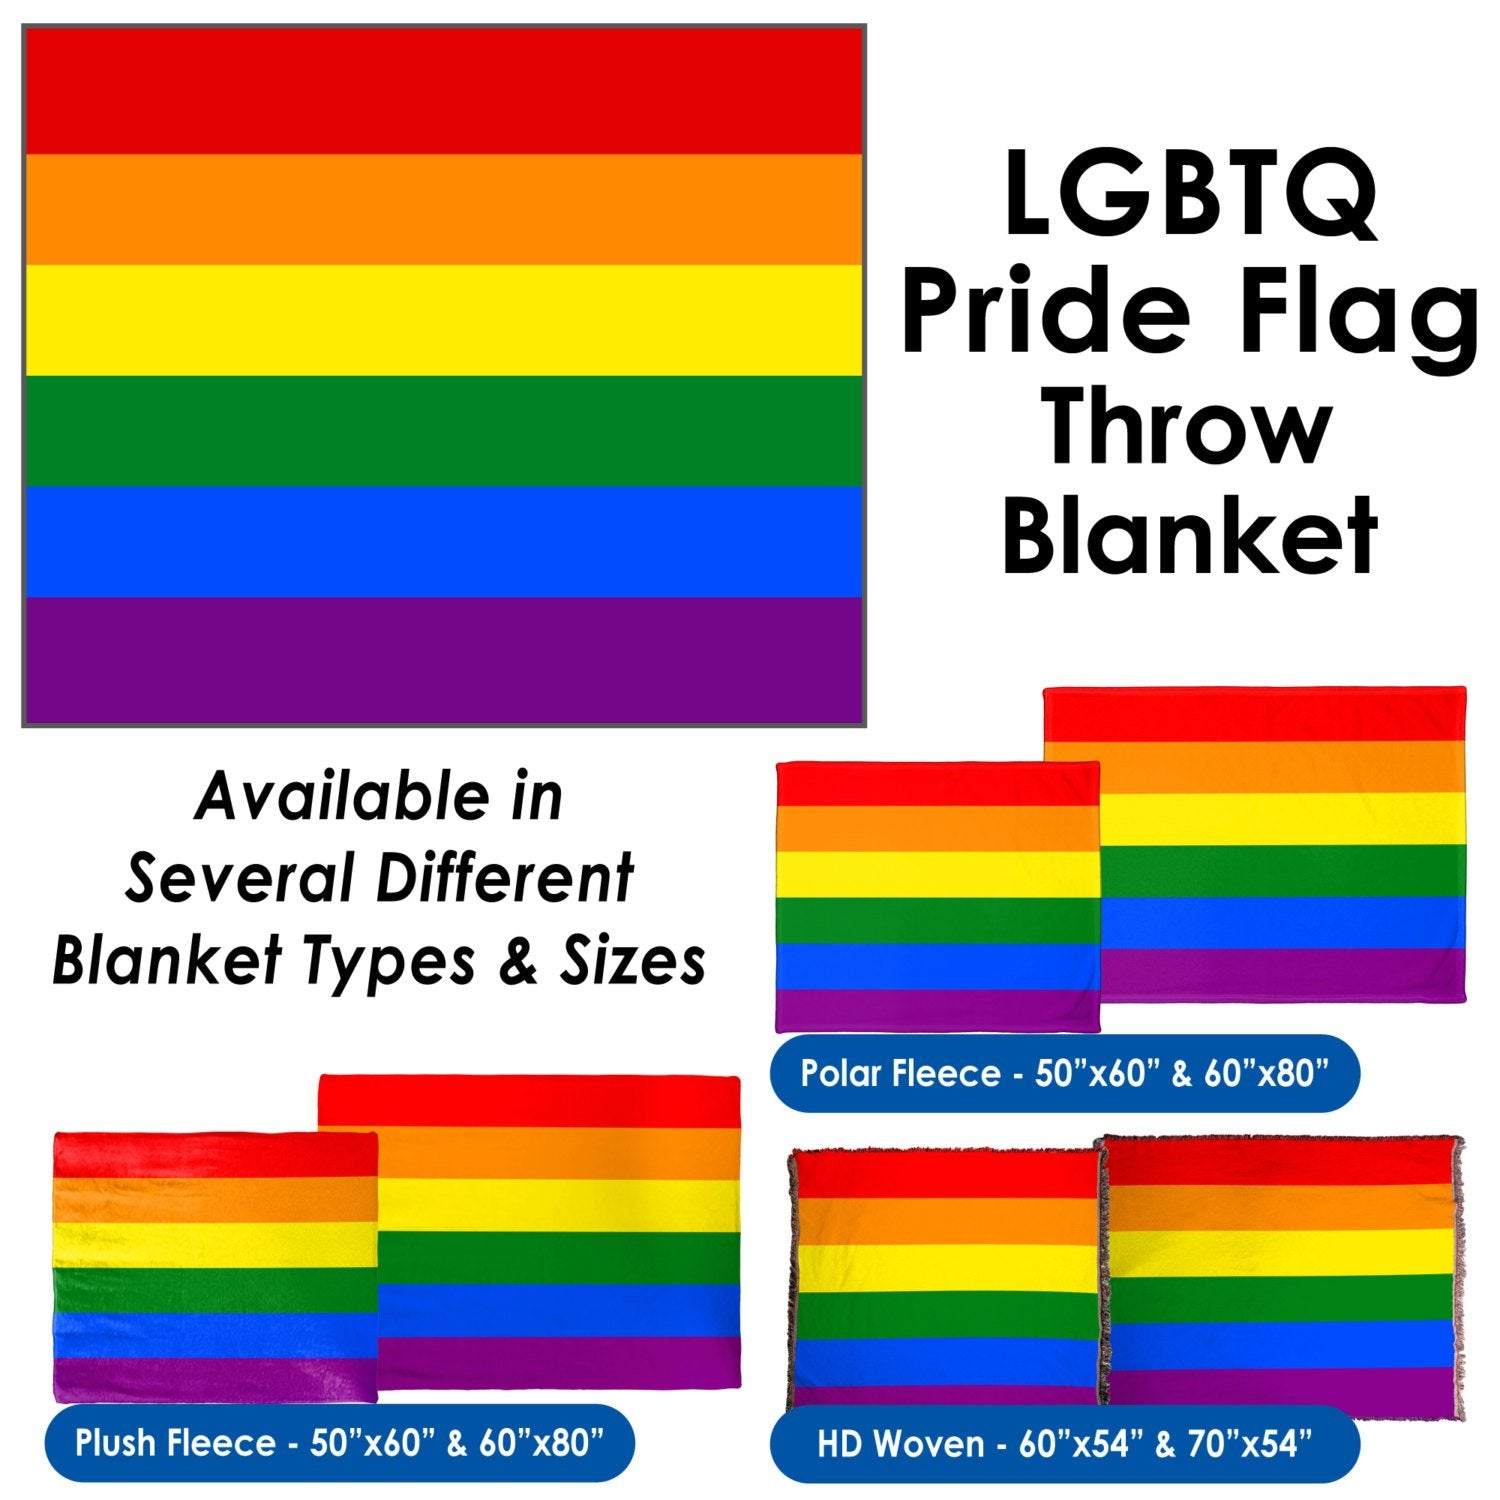 LGBTQ Pride Flag Throw Blanket / Tapestry Wall Hanging